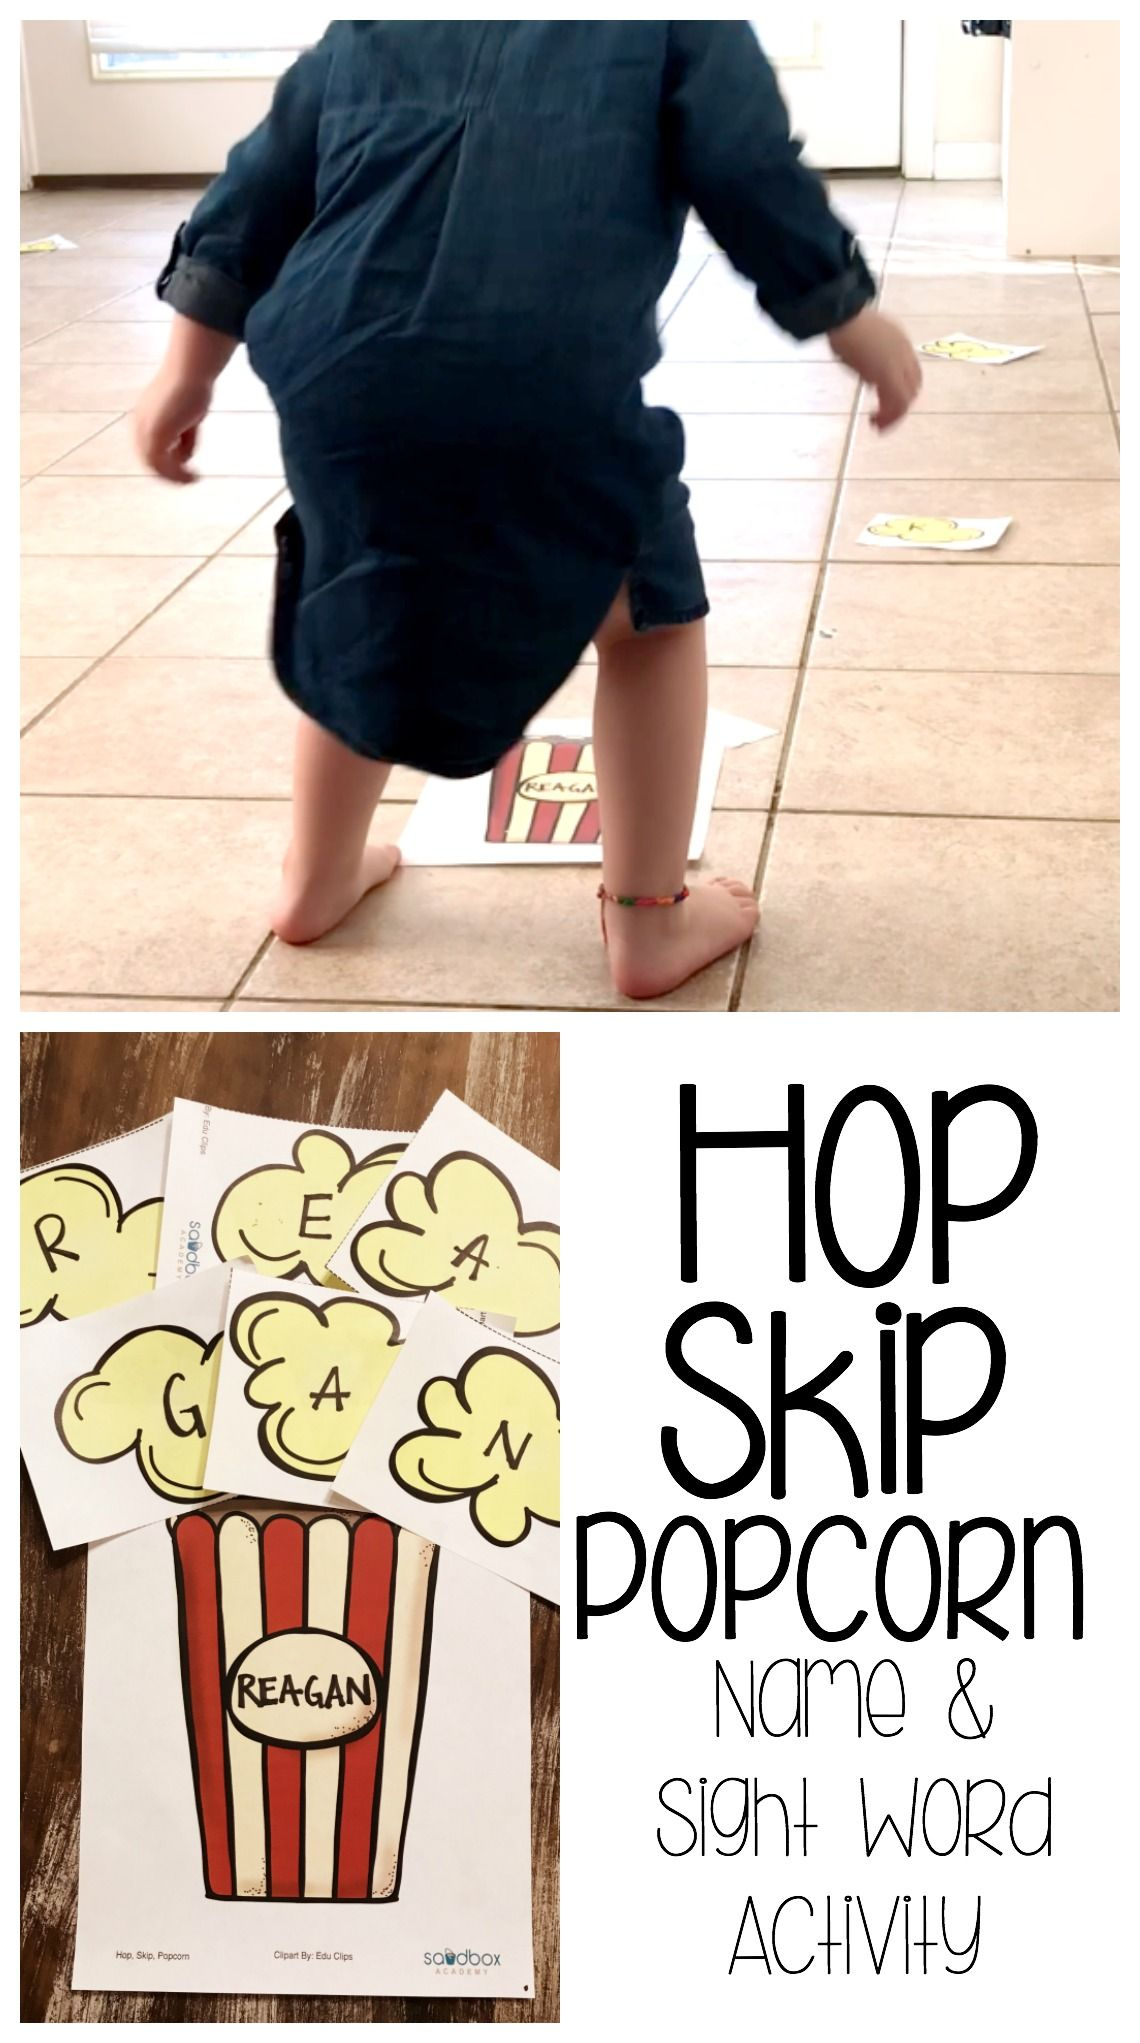 Name And Sight Word Activity For Toddlers And Preschoolers